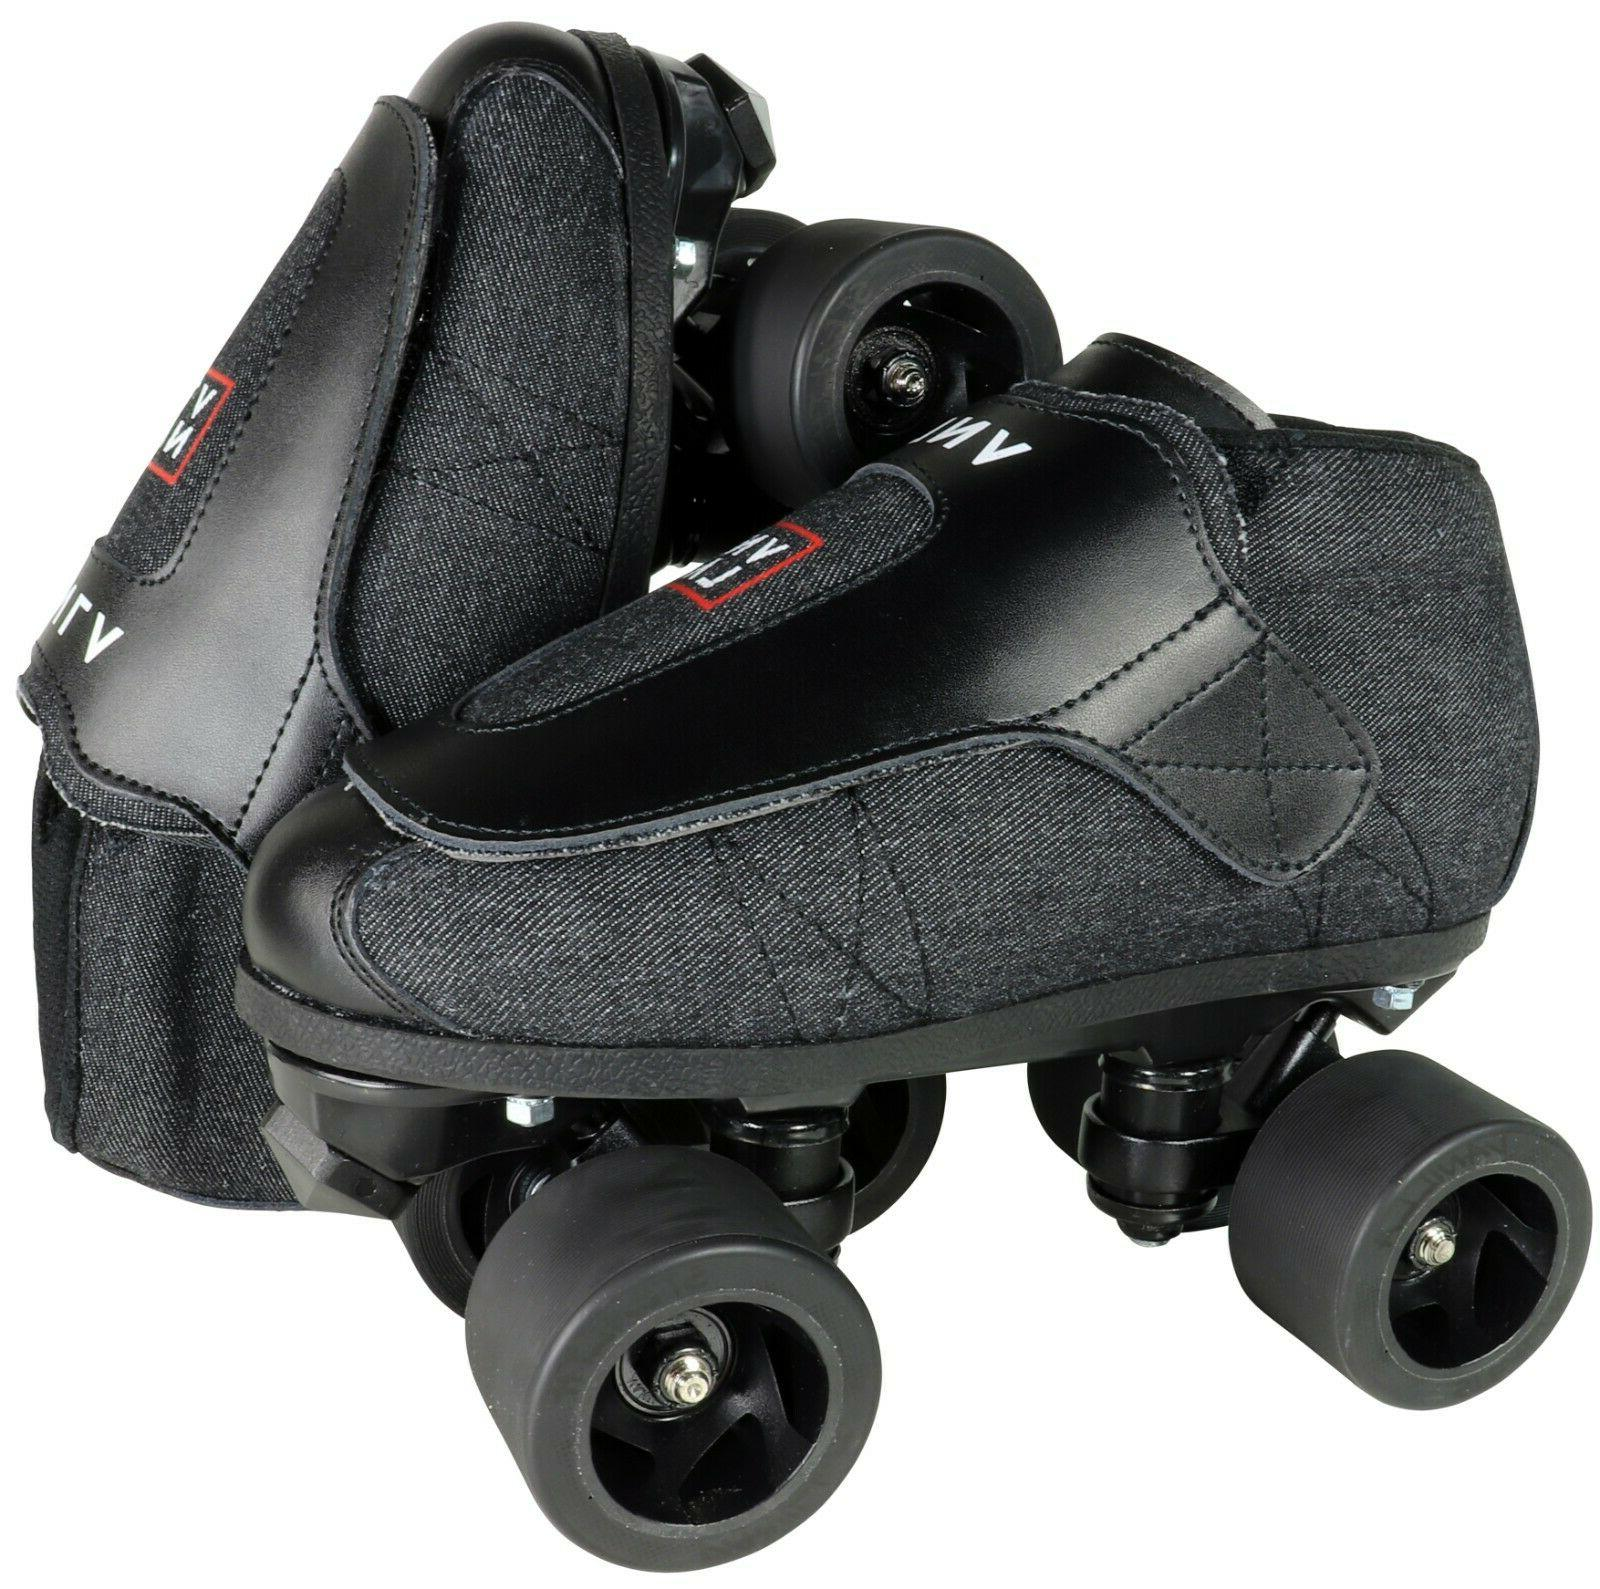 VNLA Stealth Jam - Quad Roller Skate - Indoor/ Outdoor - Men